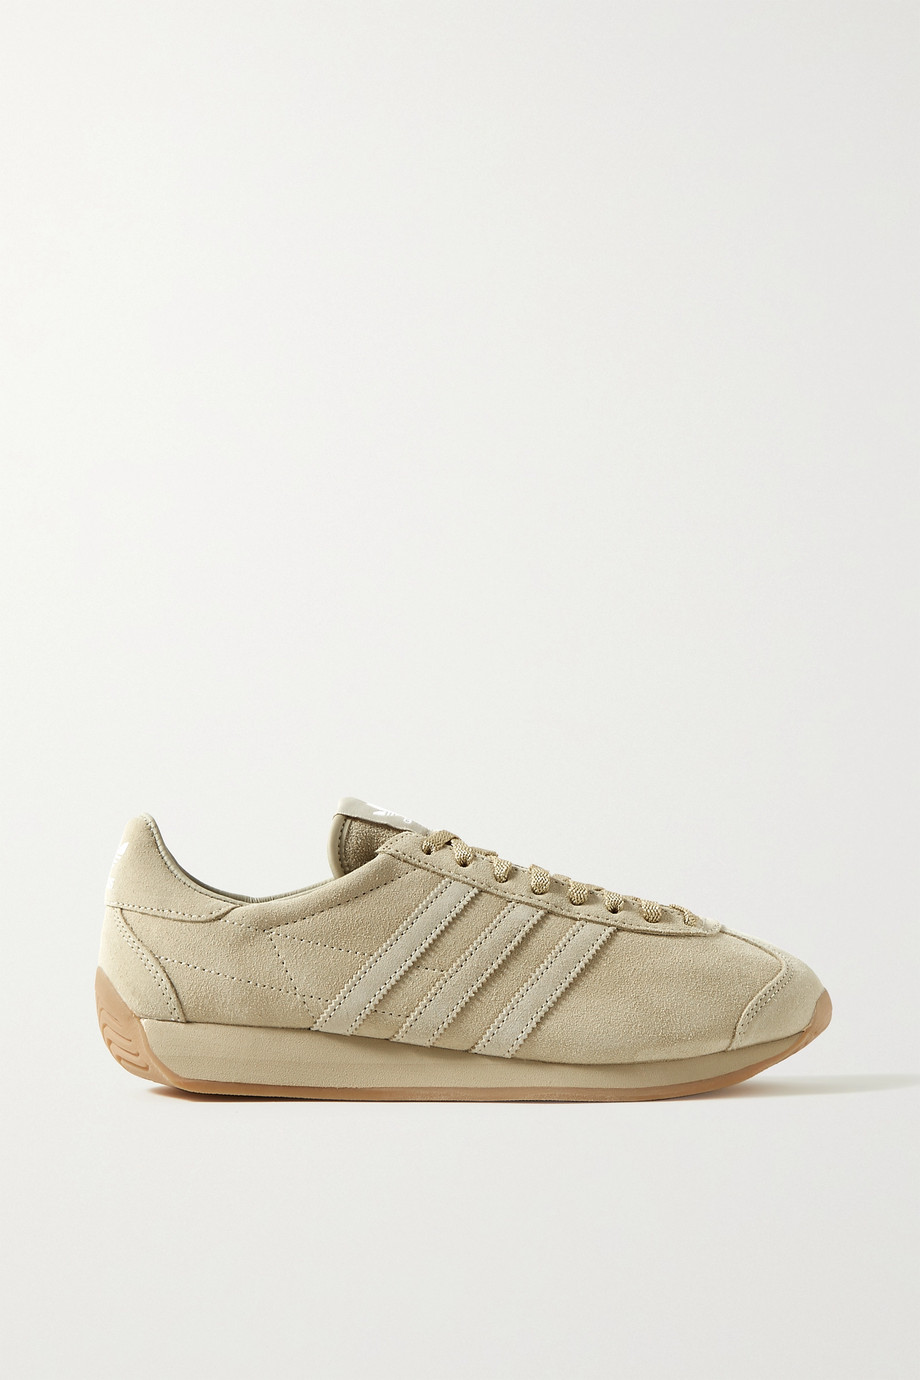 Khaite + adidas Originals suede sneakers